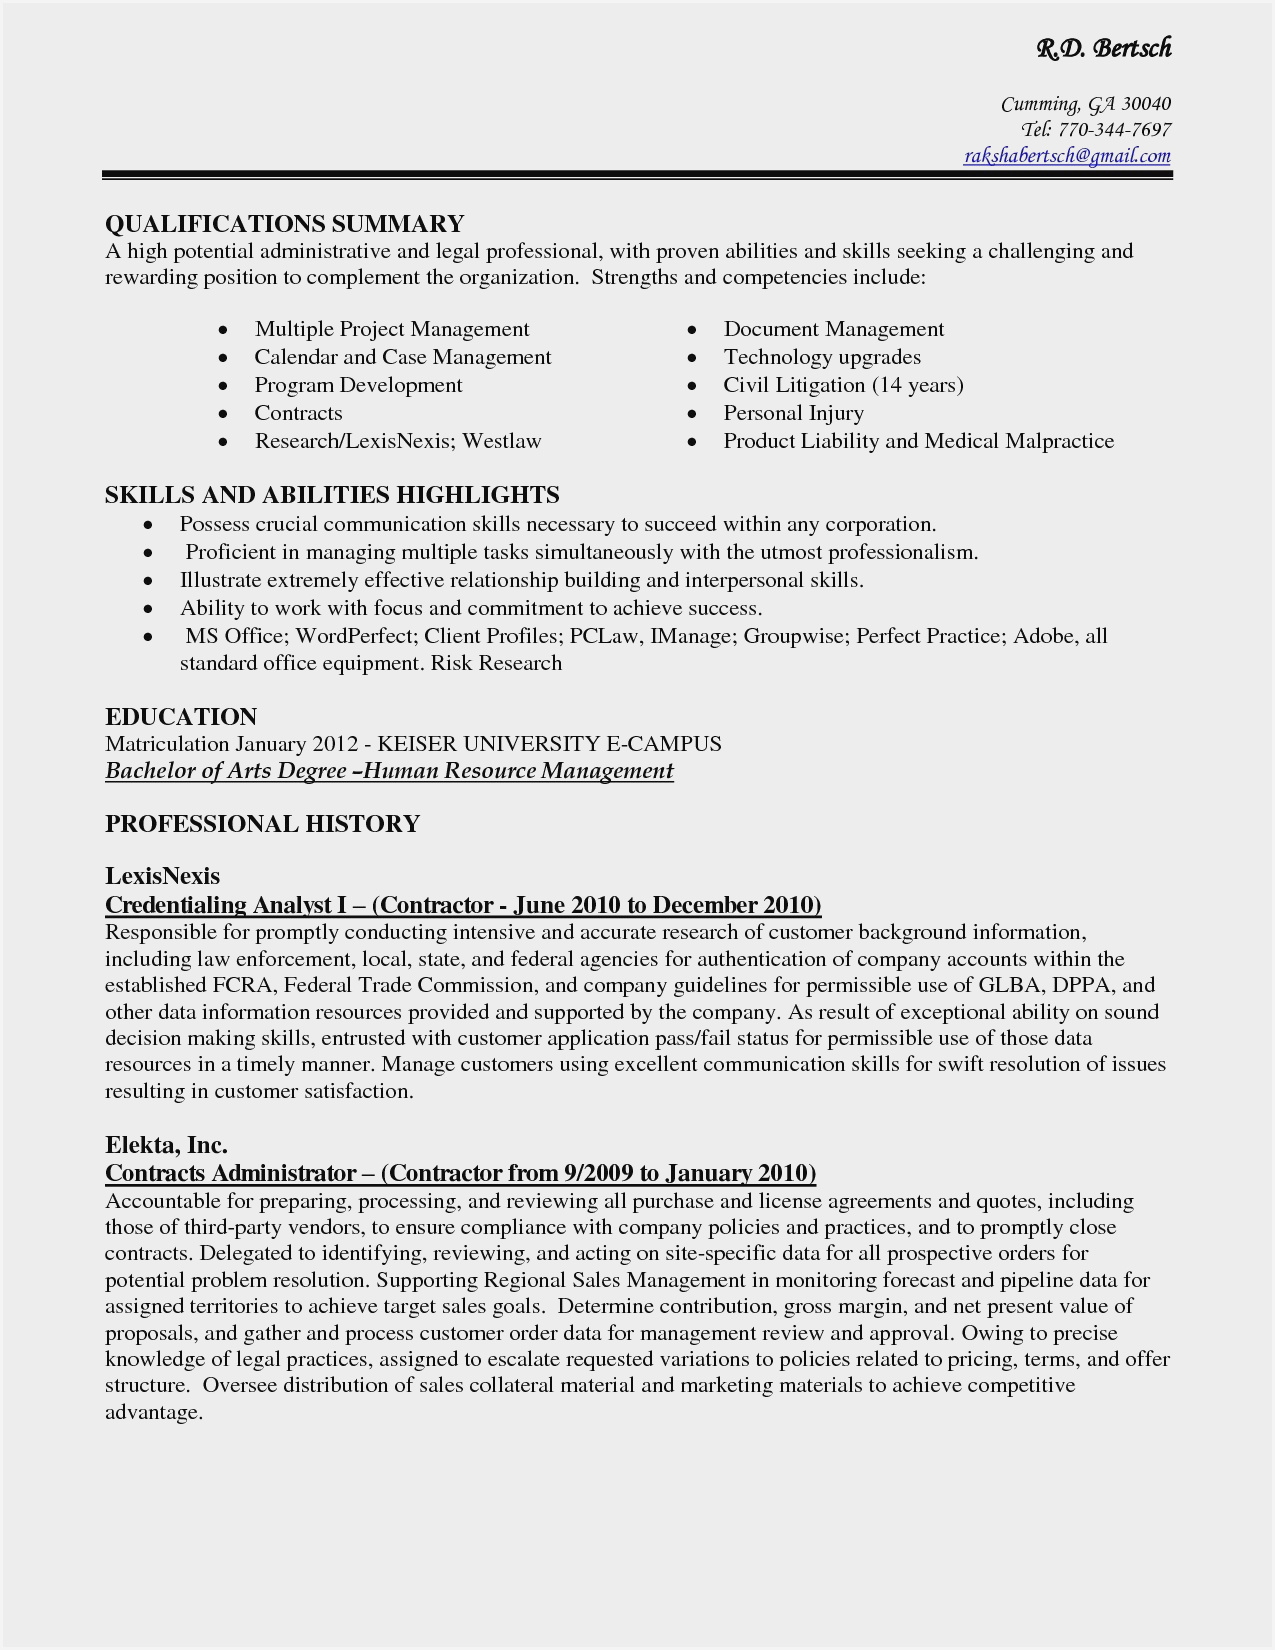 sample resume for administrative assistant skills summary example an entry level cna Resume Resume Summary Example For An Administrative Assistant